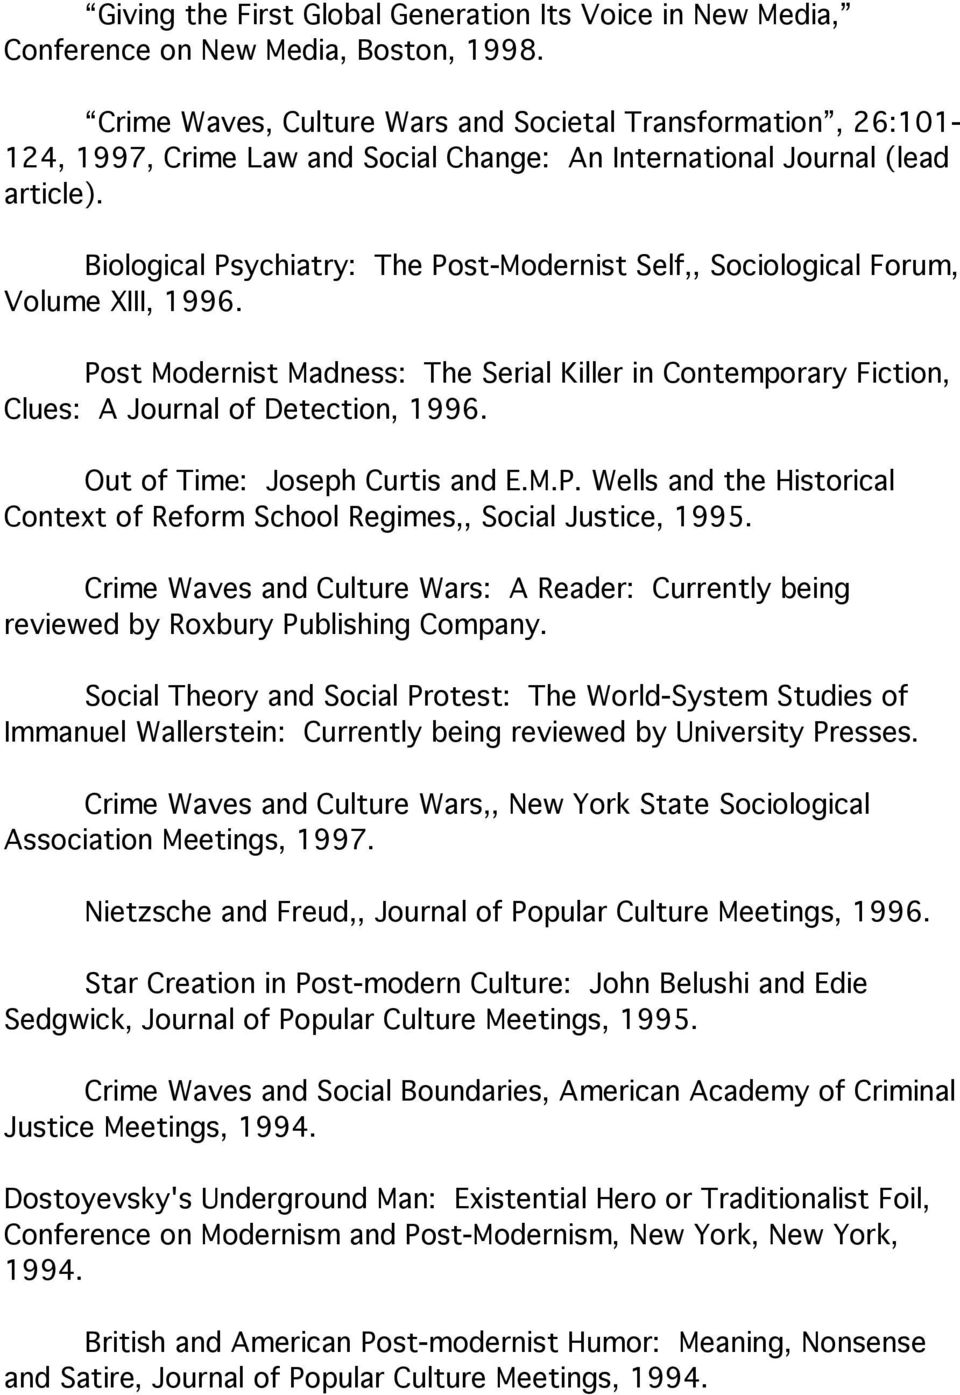 Biological Psychiatry: The Post-Modernist Self,, Sociological Forum, Volume XIII, 1996. Post Modernist Madness: The Serial Killer in Contemporary Fiction, Clues: A Journal of Detection, 1996.